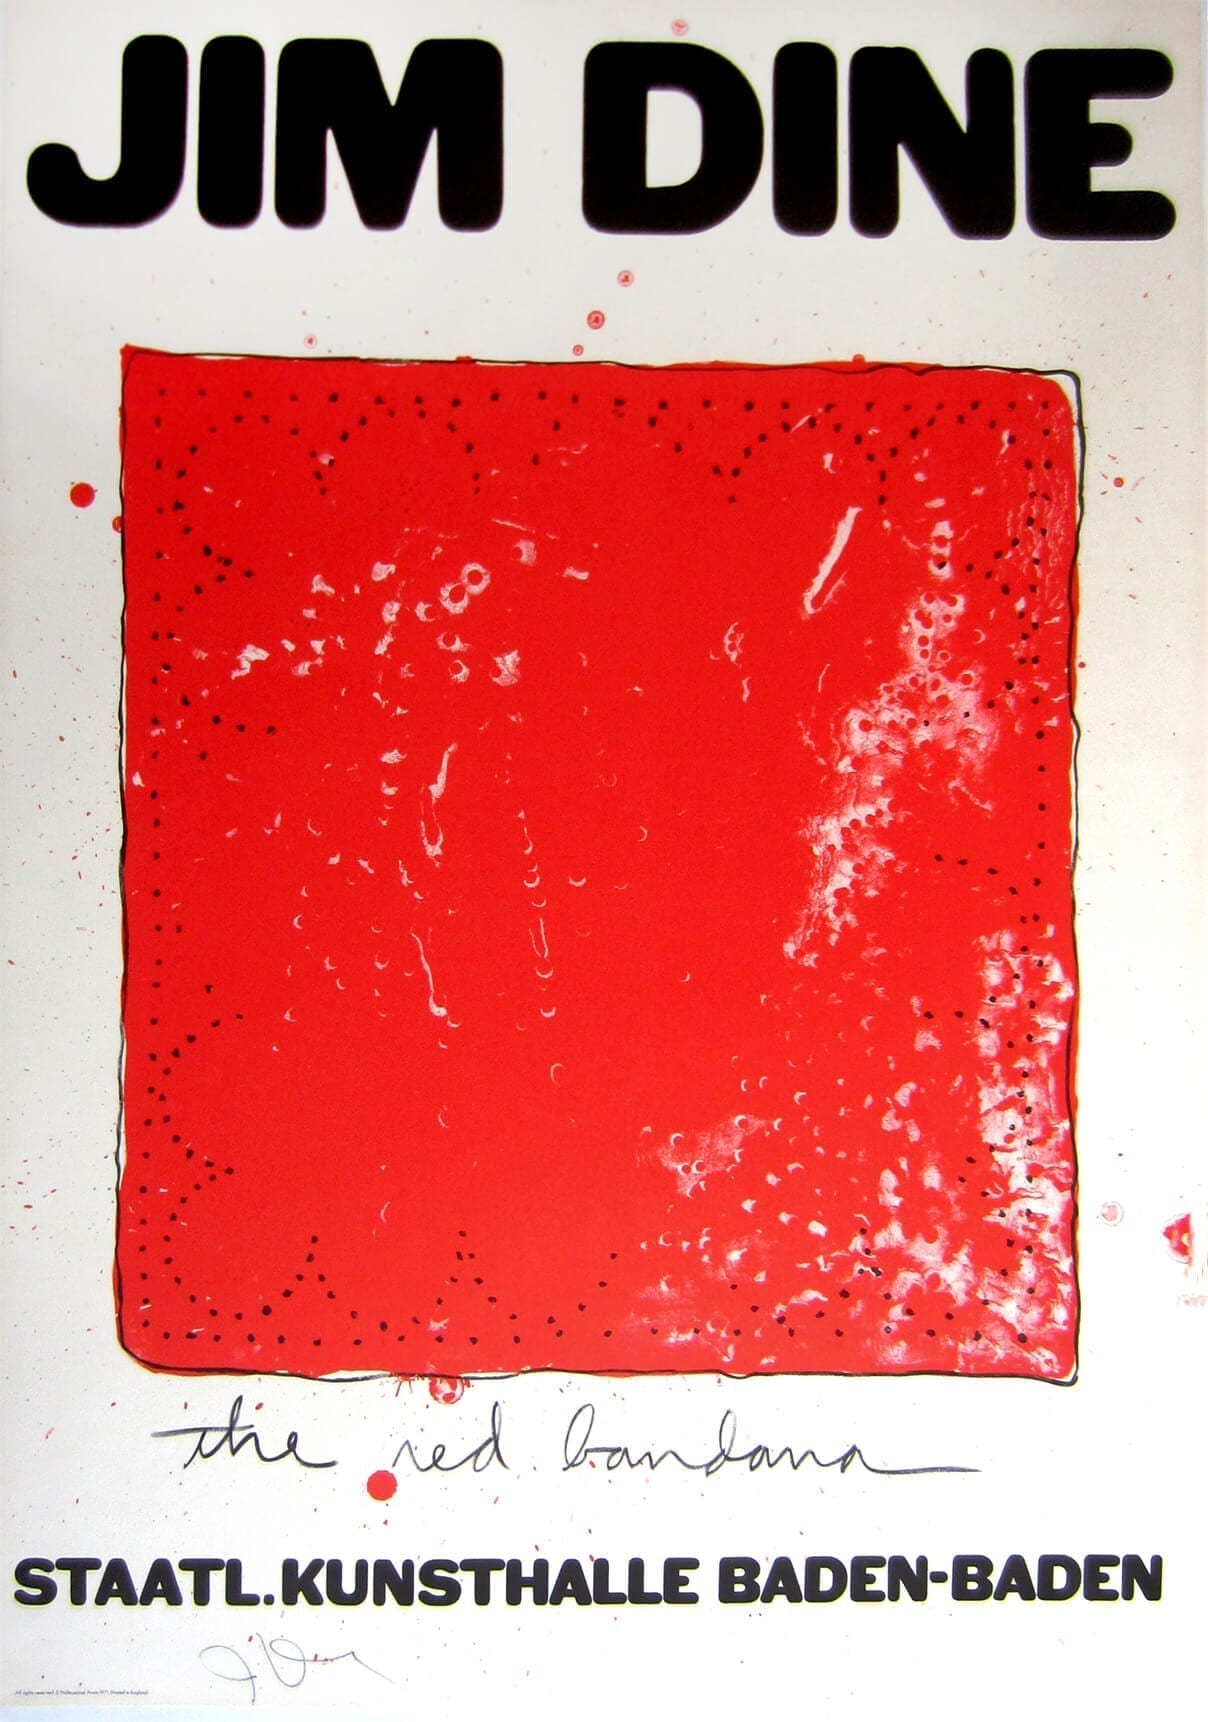 Jim Dine, The red bandana, 1971